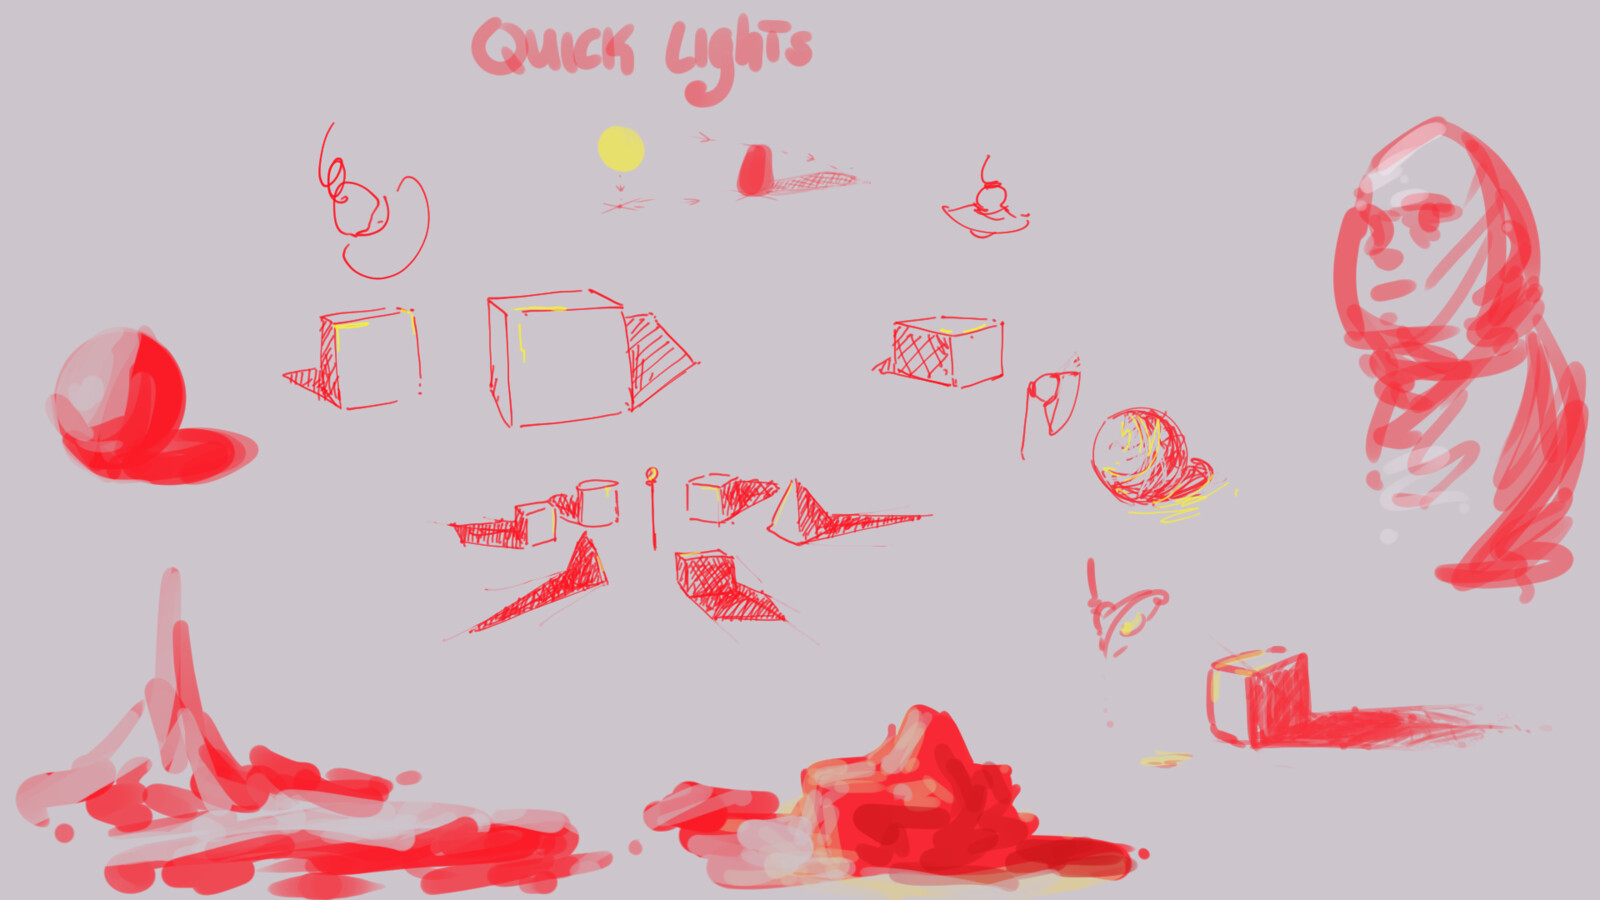 Quick sketch about some lights/lighting, to practice and to demonstrate some concepts to a friend.